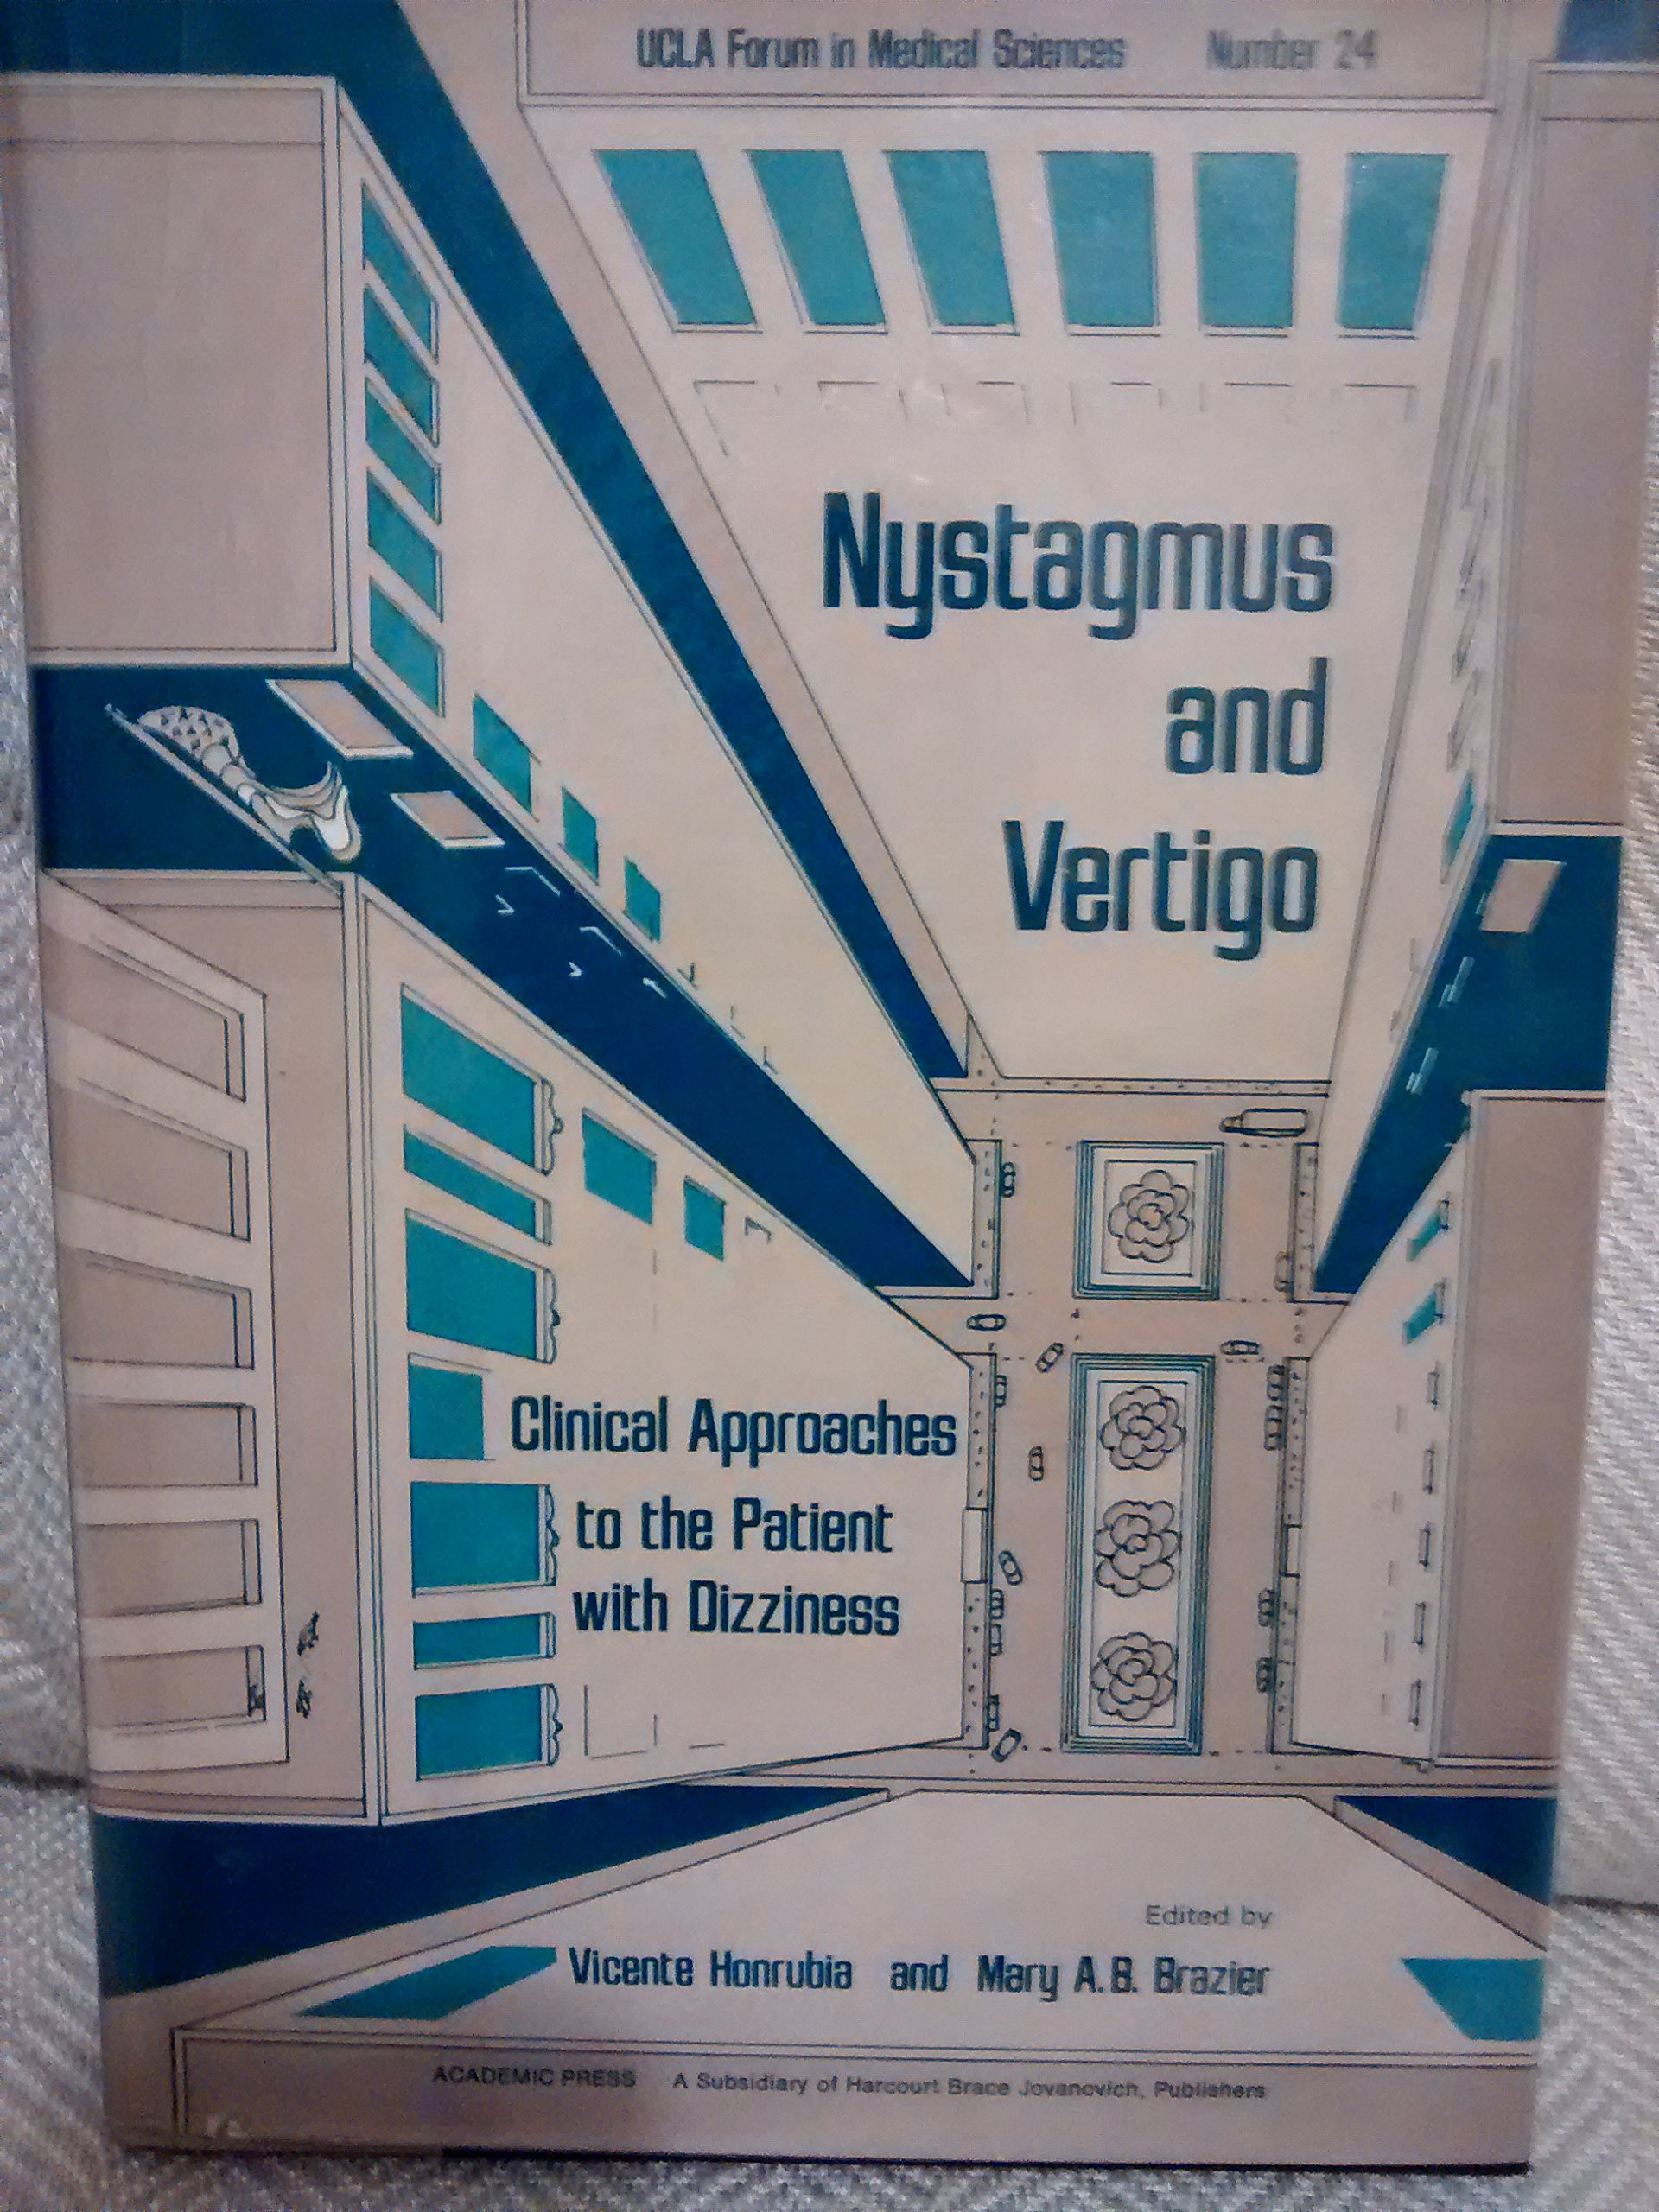 Nystagmus and Vertigo: Clinical Approaches to the Patient